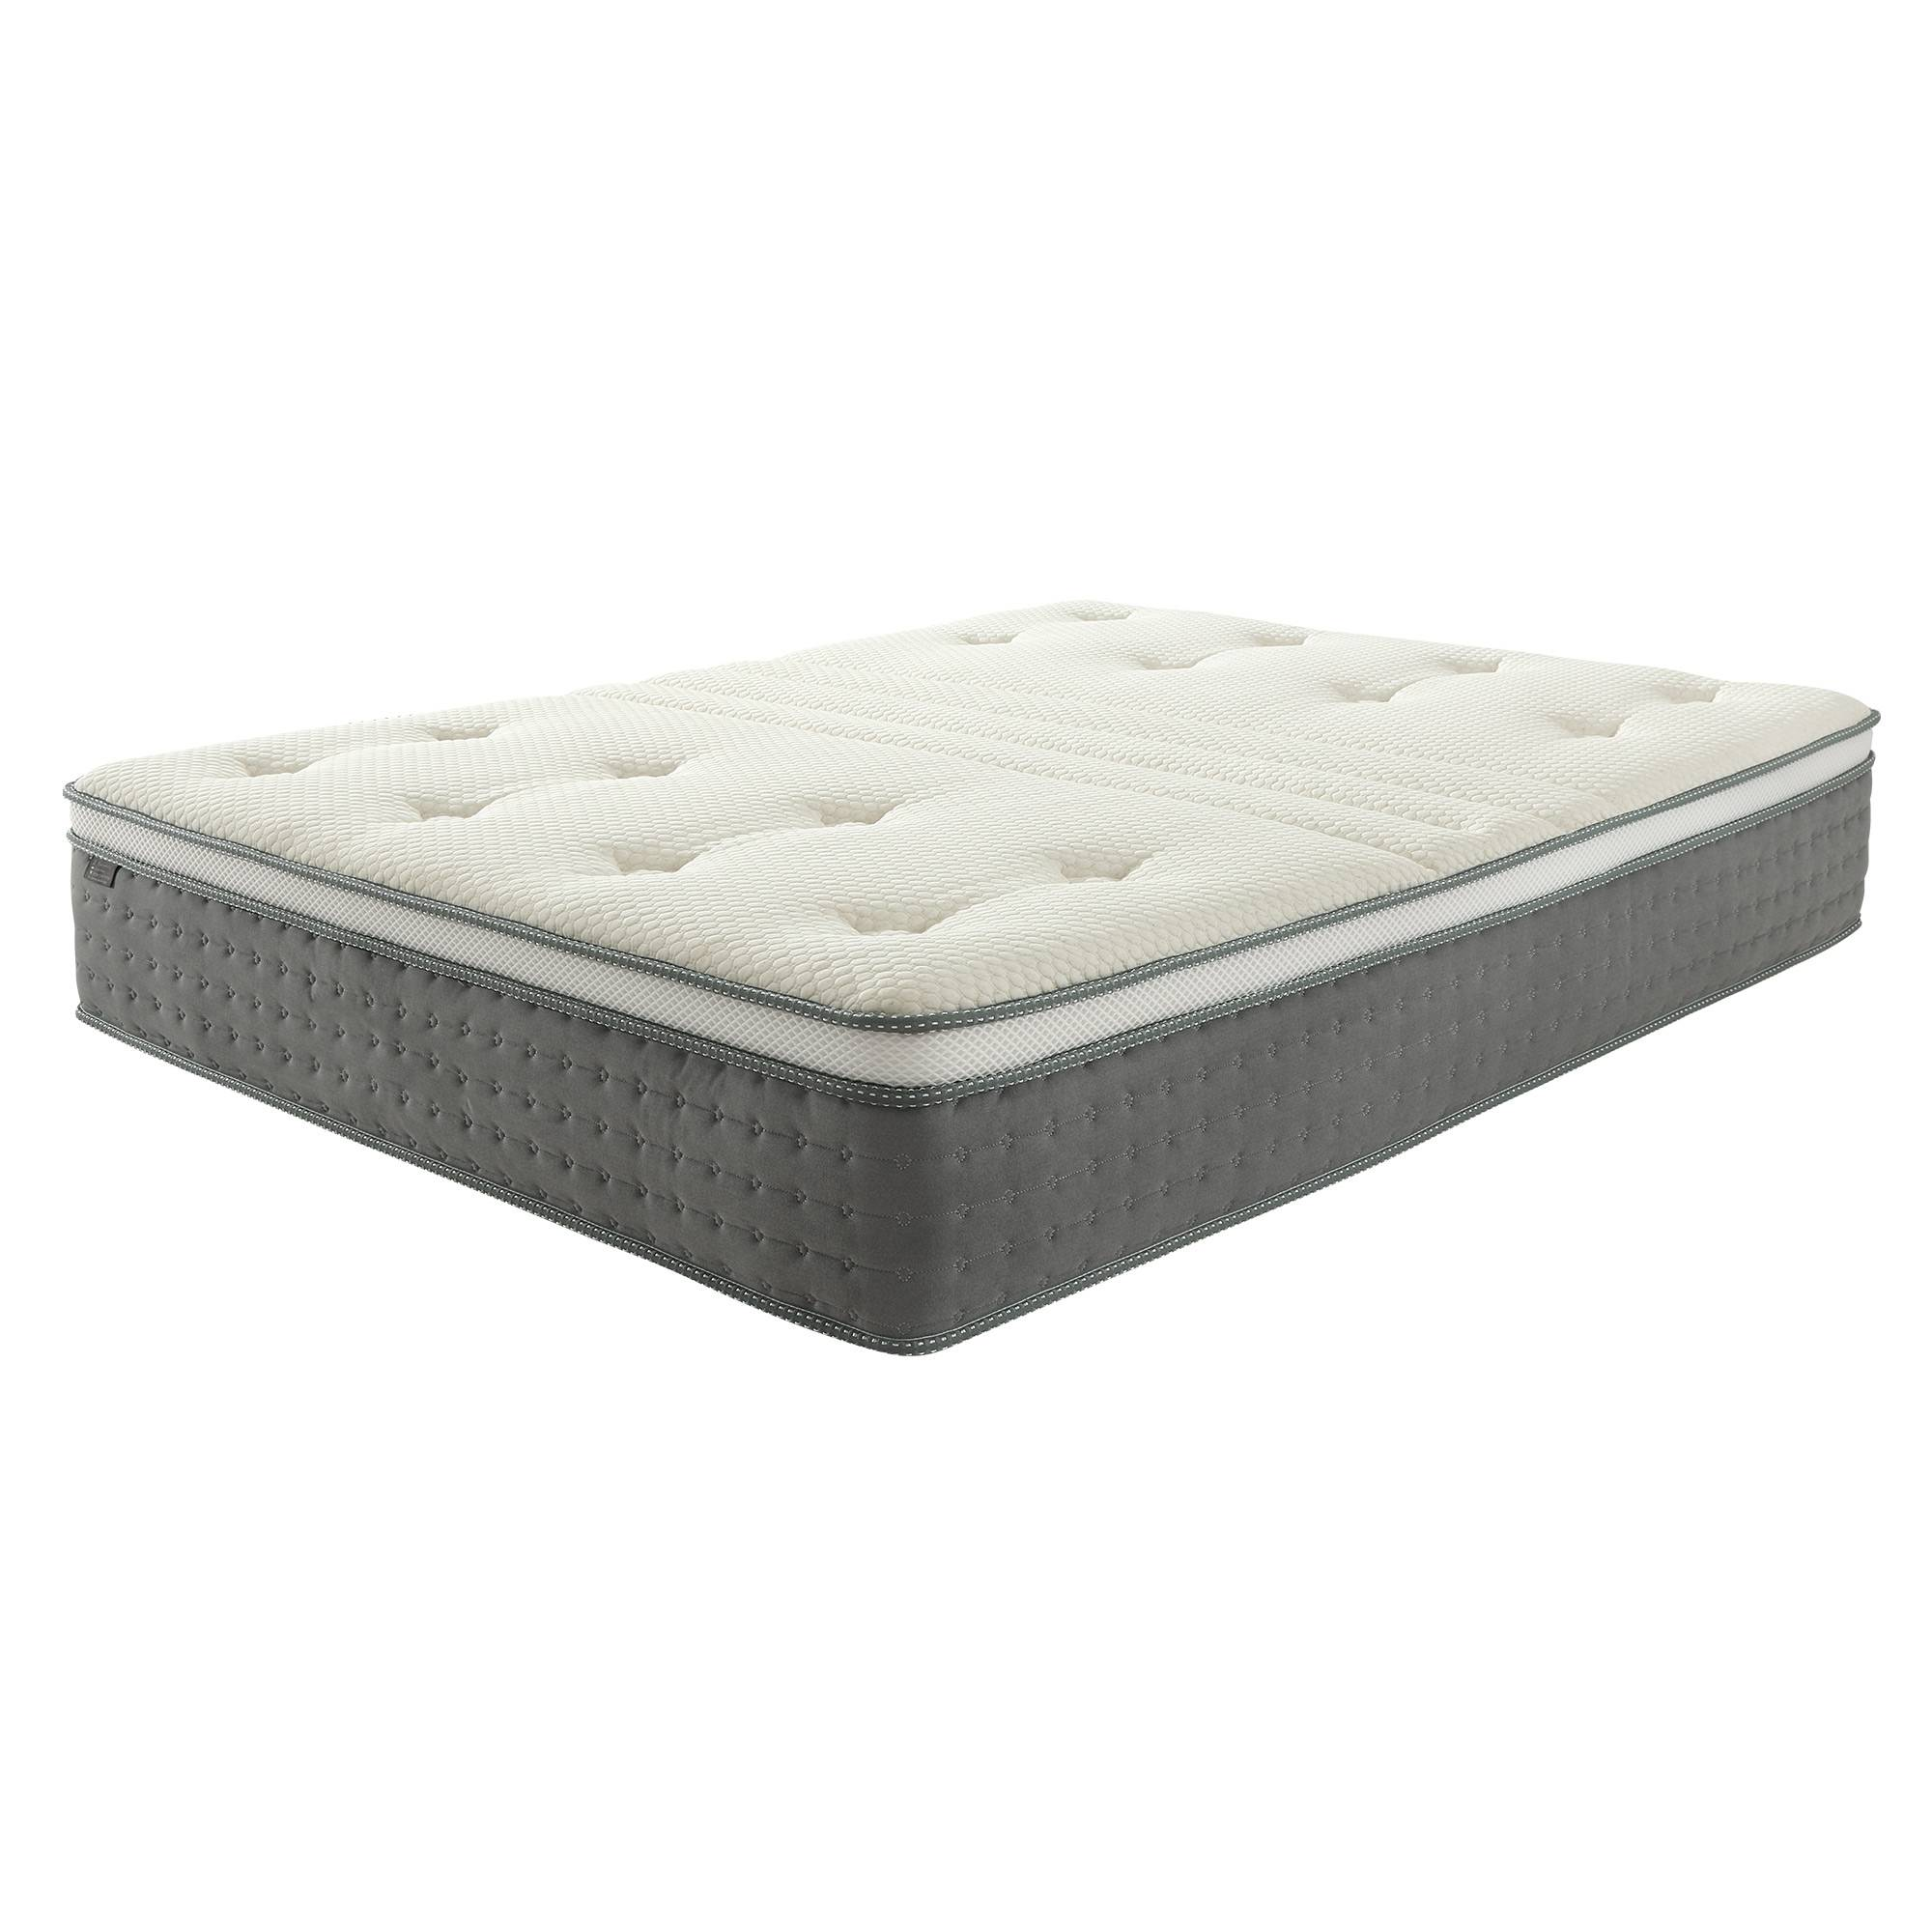 Super edurance balance comfortable mattress 12″ Featured Image